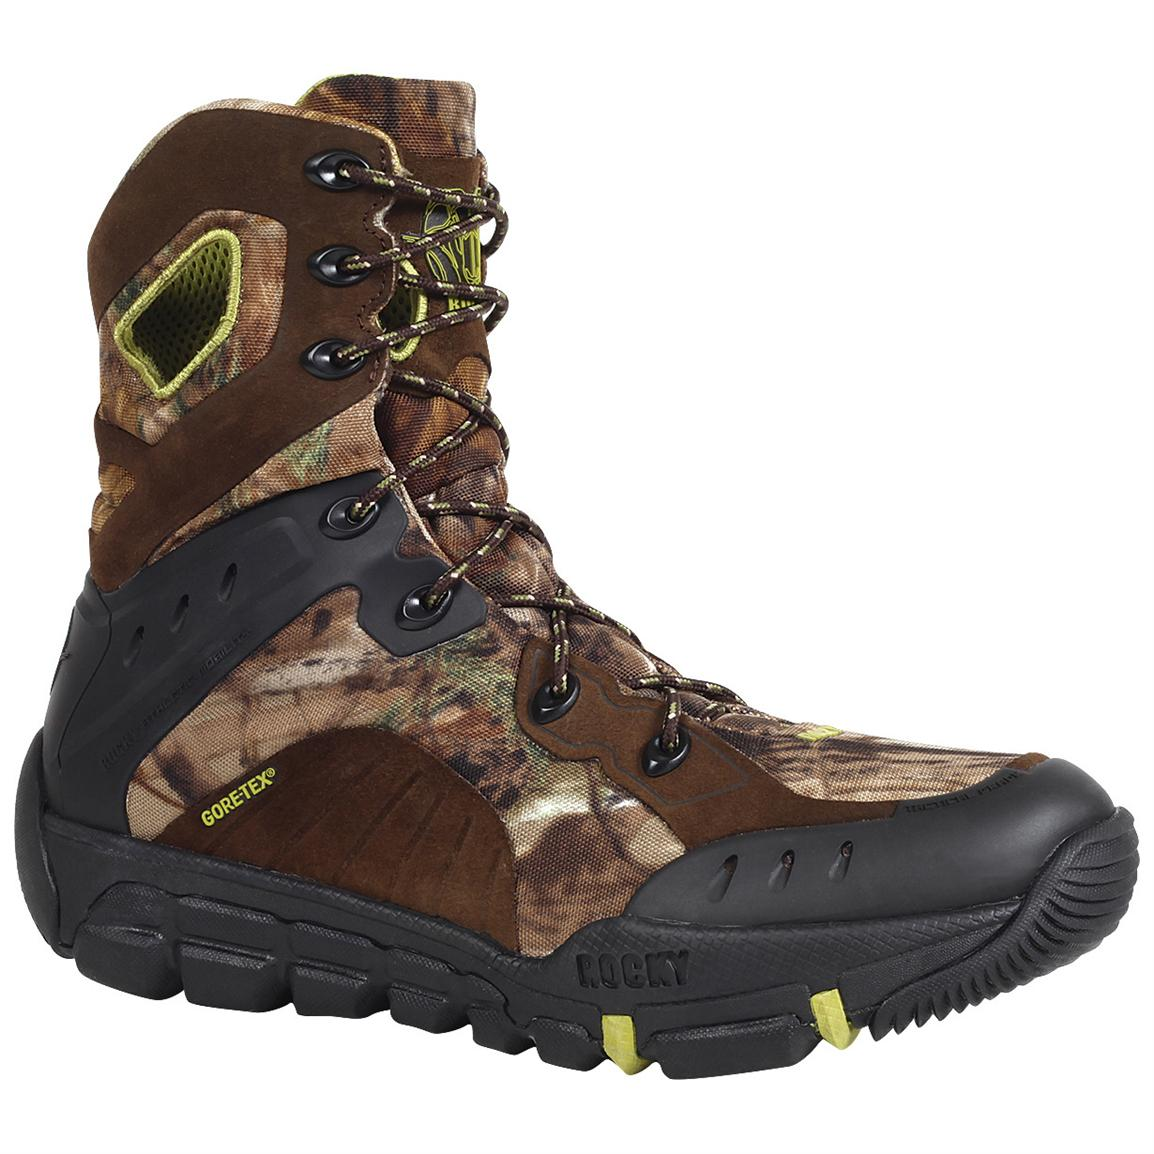 Rocky® 8 inch L2 Waterproof Boots, Realtree® AP™ Xtra Green